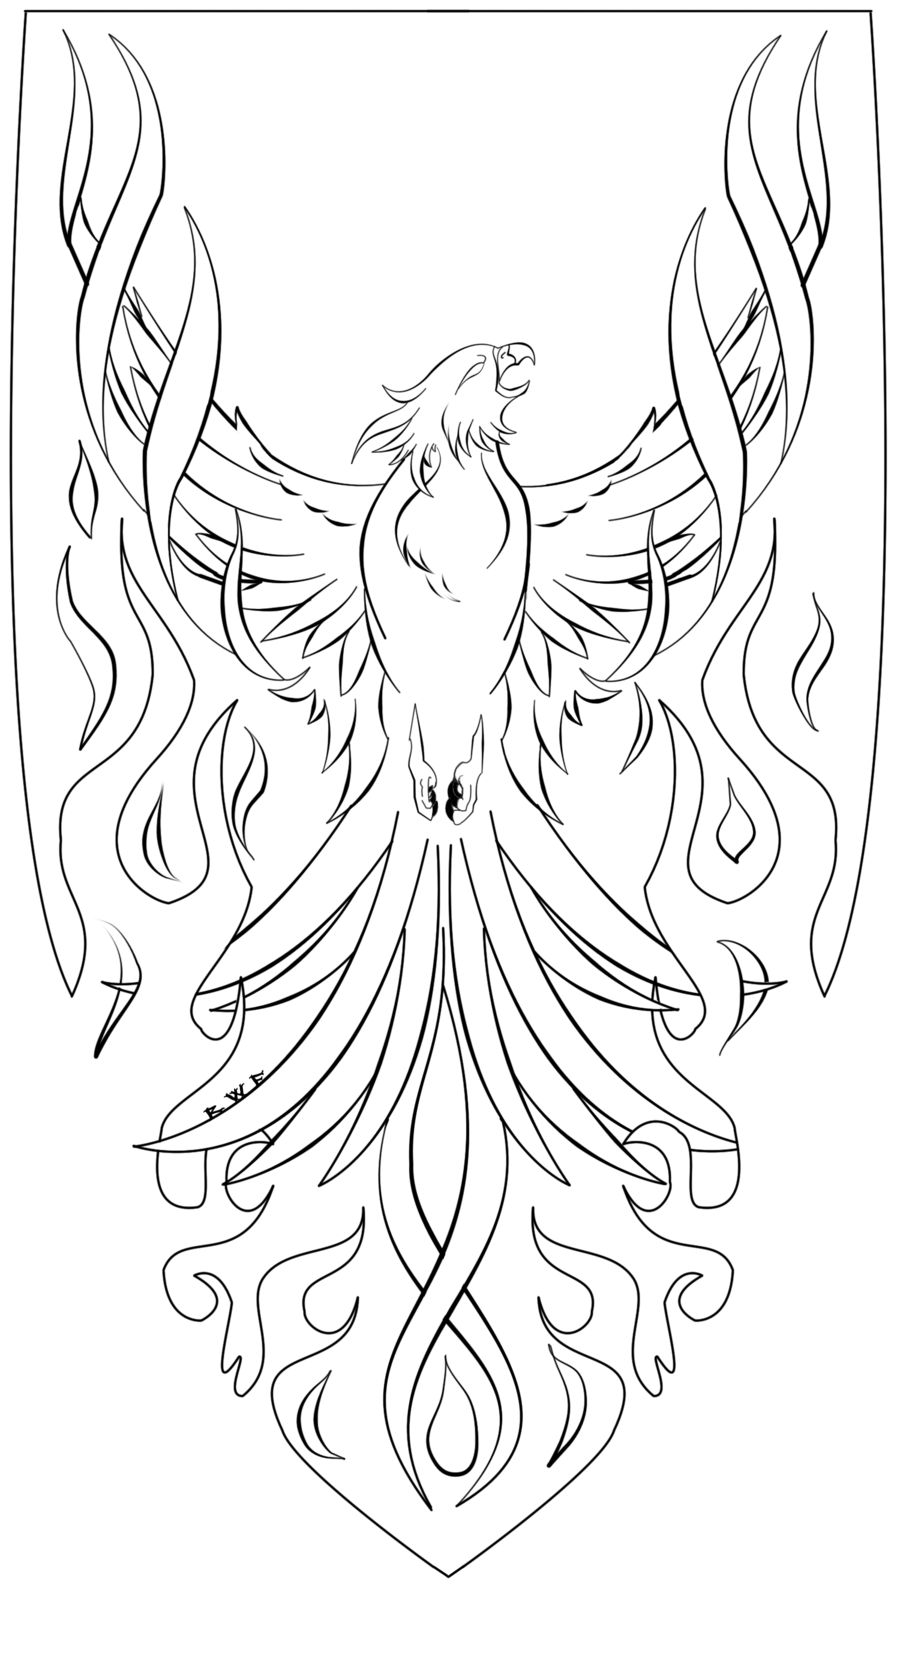 phoenix coloring pages phoenix coloring pages to download and print for free coloring phoenix pages